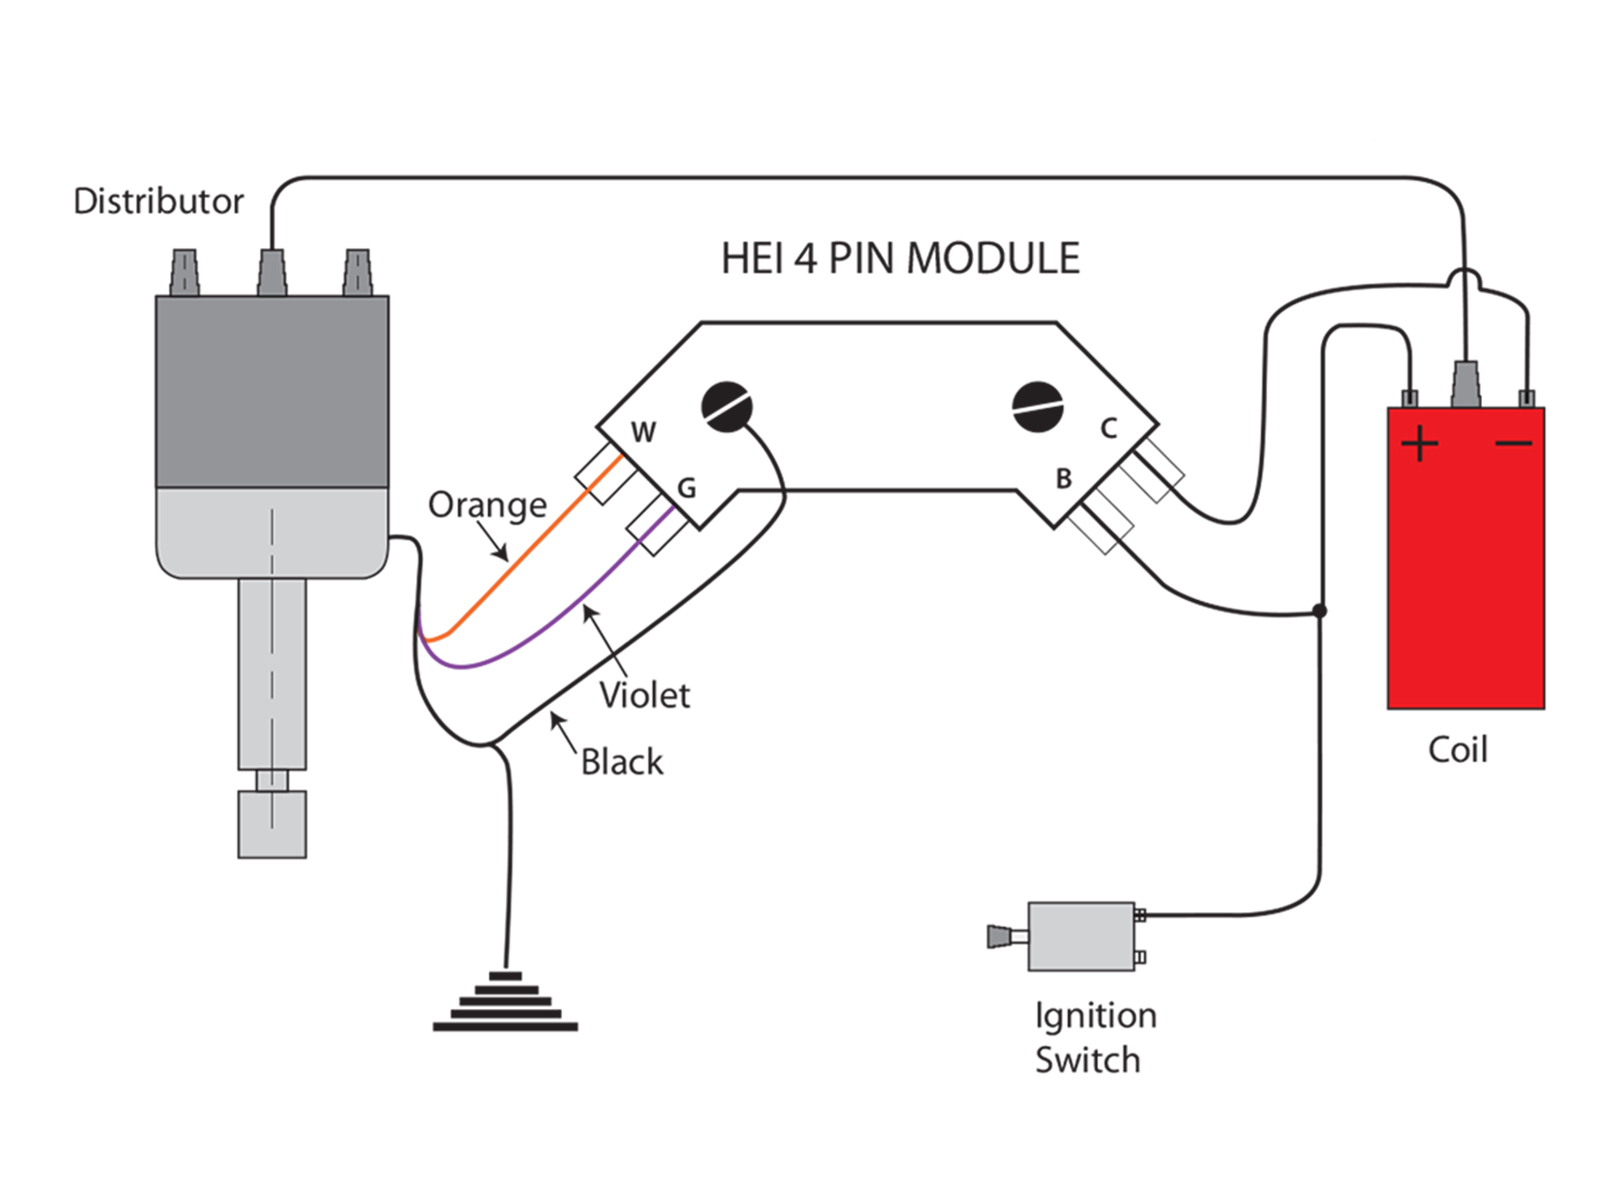 Gm Hei Ignition Diagram - Data Wiring Diagram Today - Ford Ignition Control Module Wiring Diagram